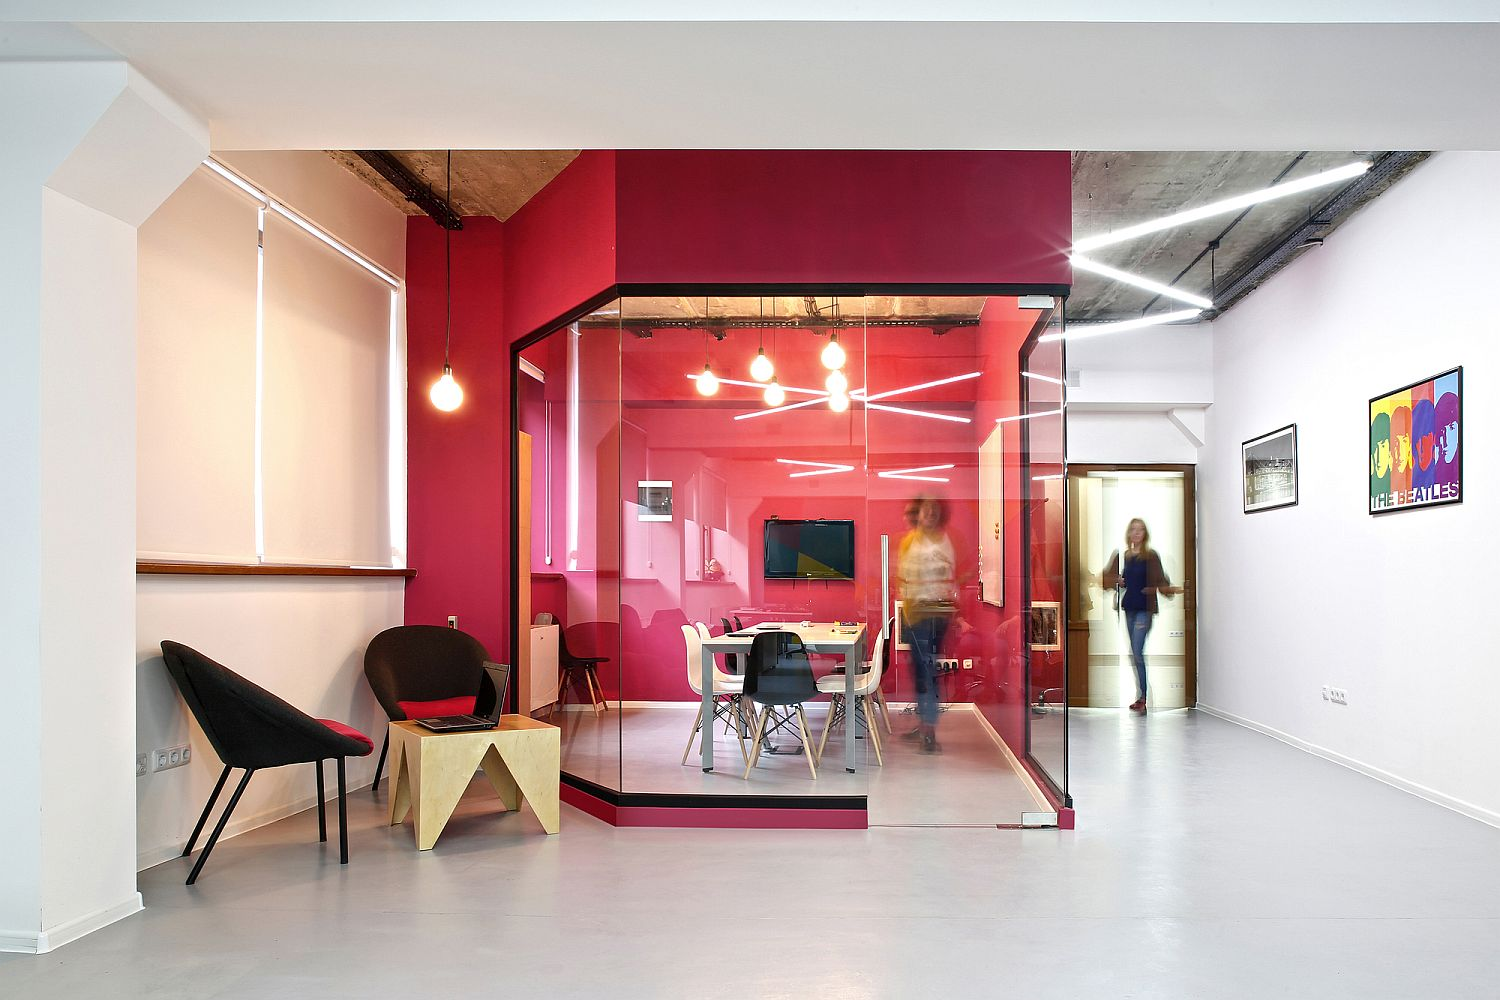 Bright and bold pink creates a vivacious conference room for the modern office